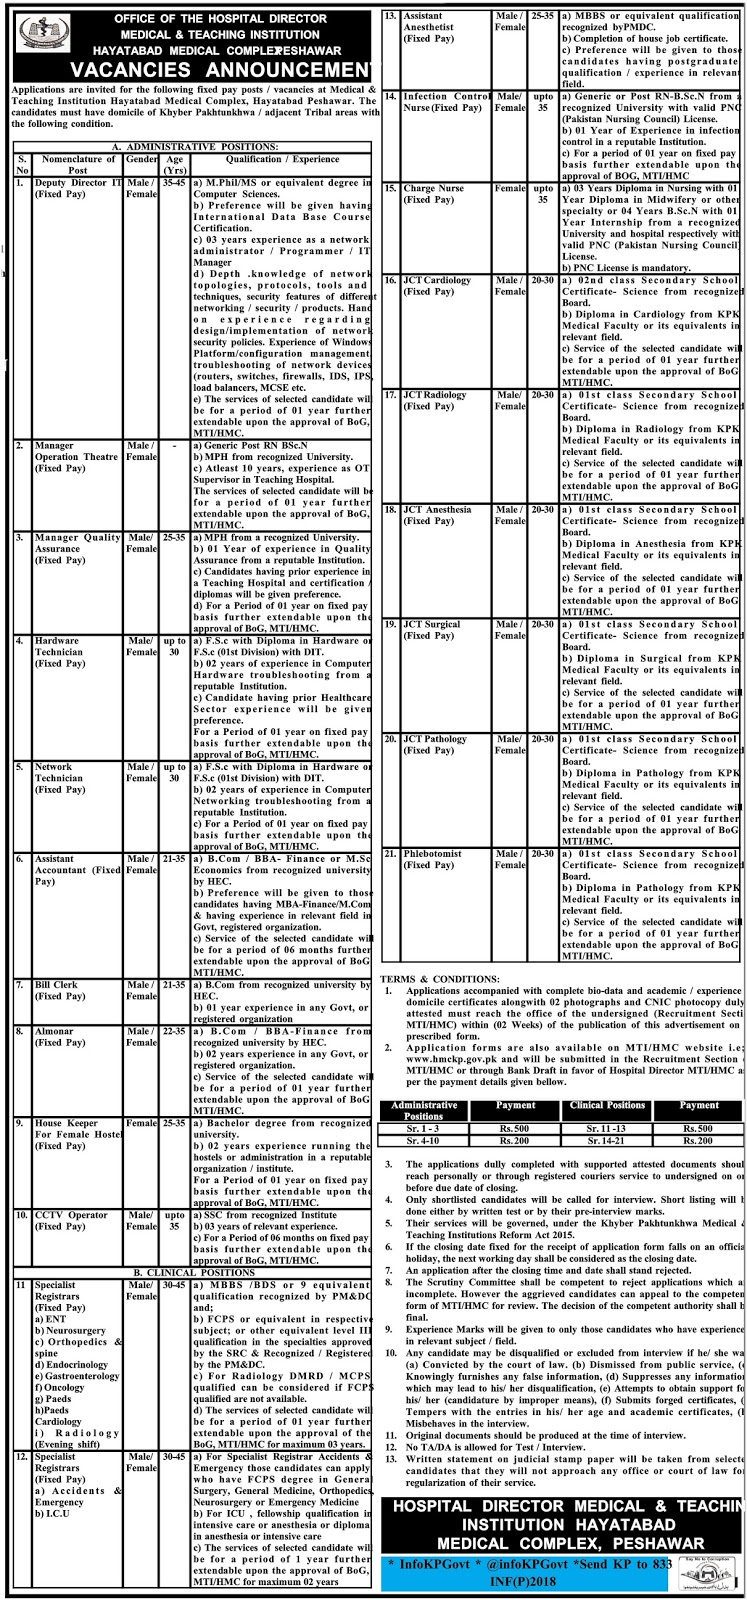 Hayatabad Medical & teaching Institution Complex Peshawar jobs 2 may 2017